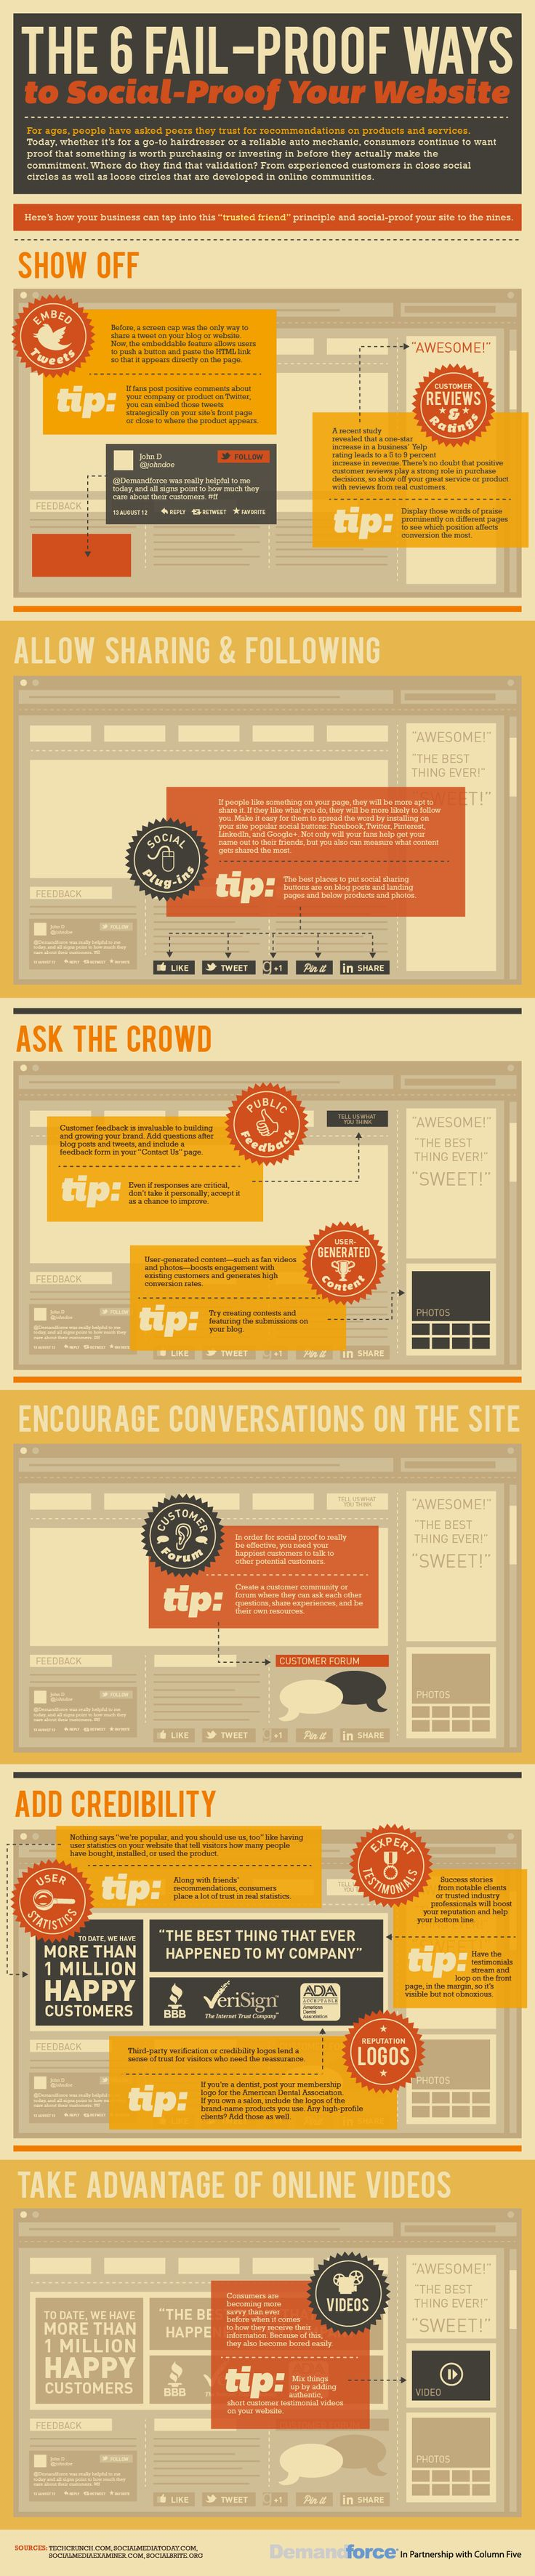 Social Proof Website Tips Which Change Everything via @bitrebels #Infographic